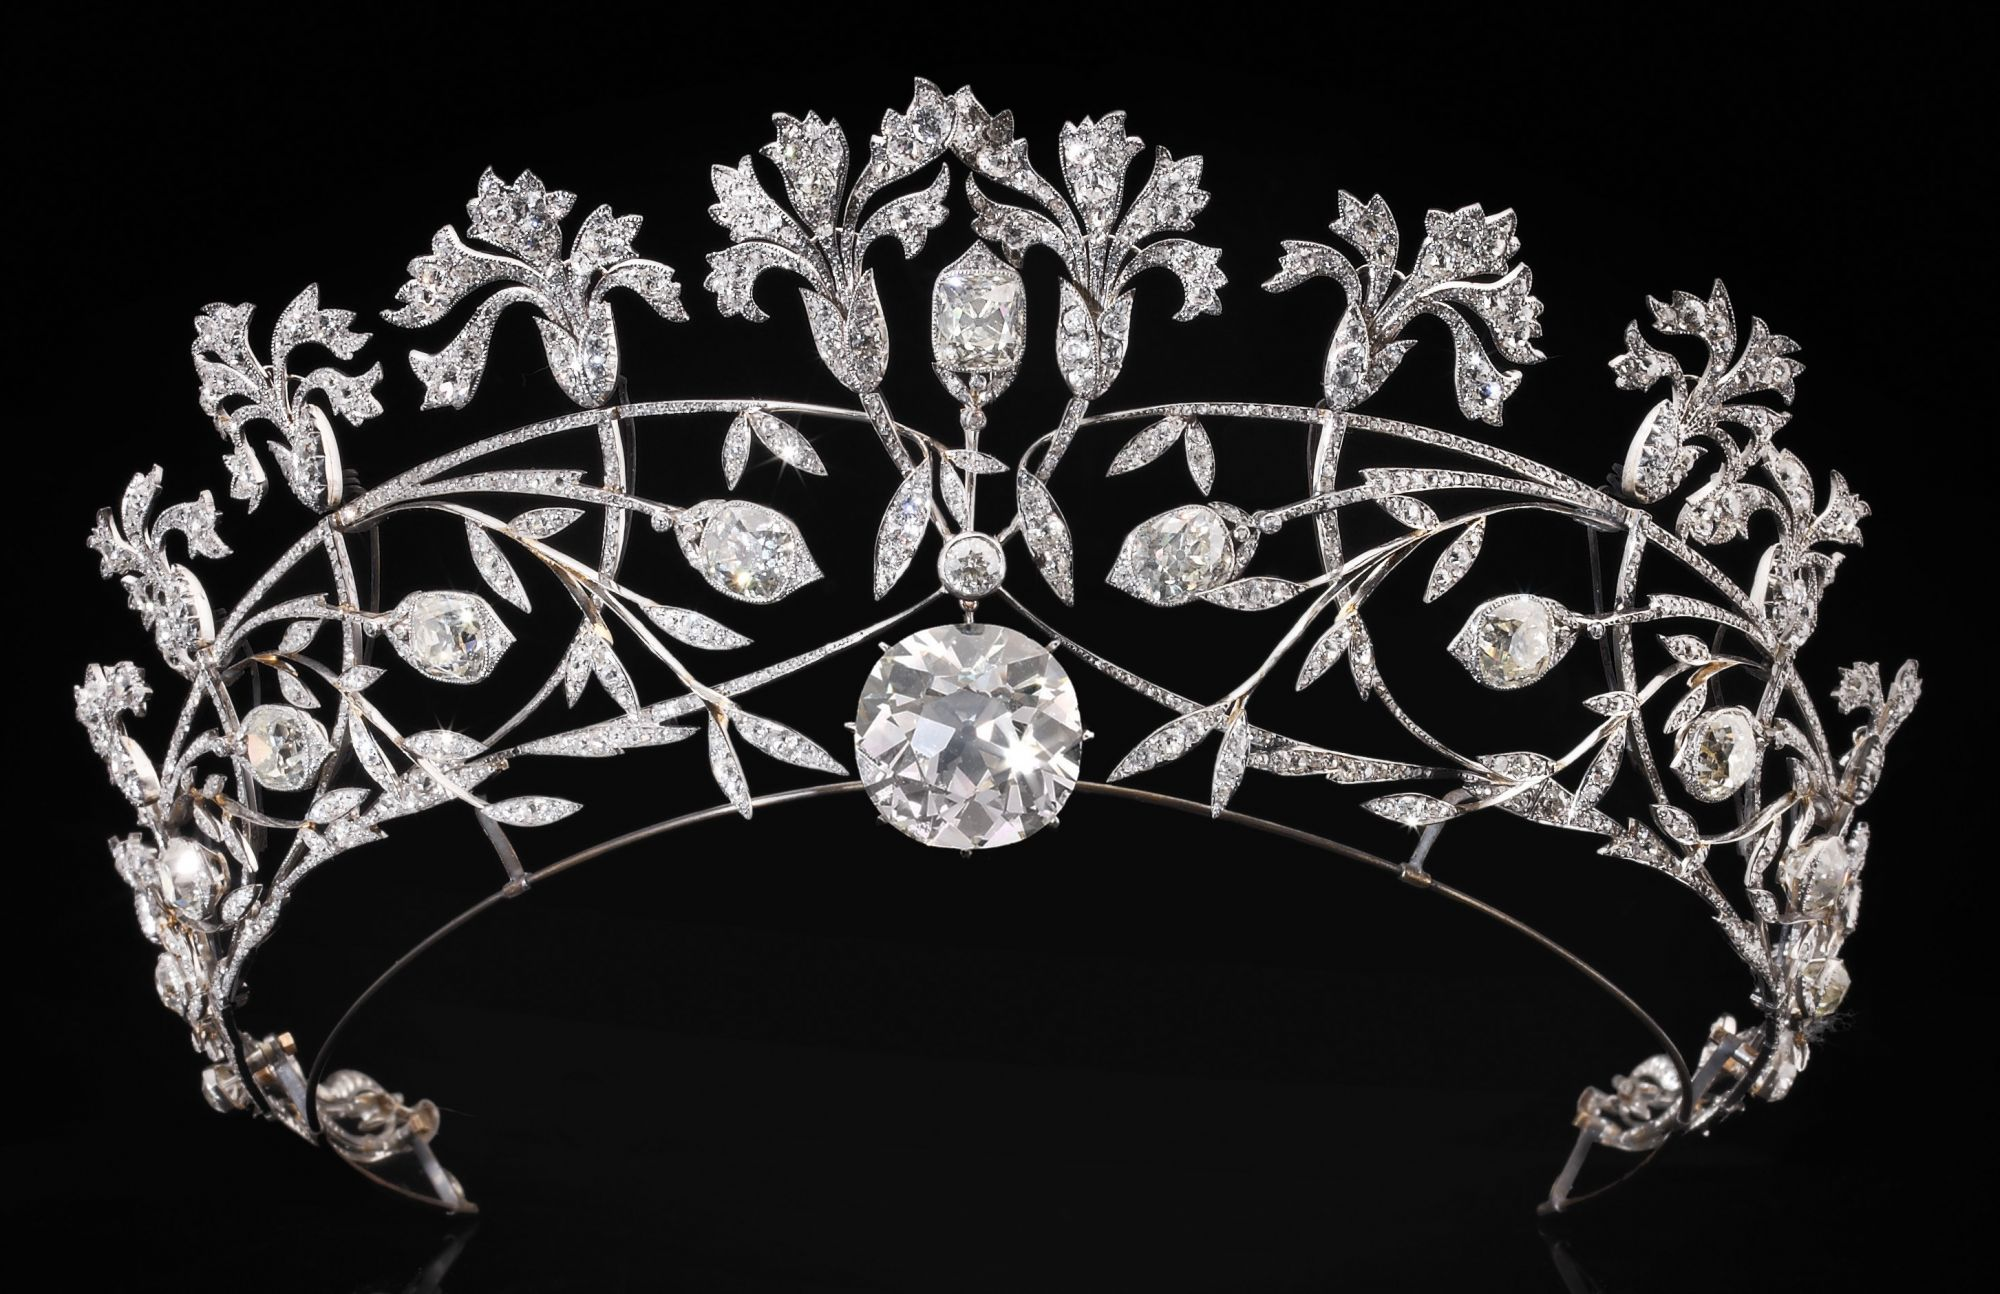 From The Pope's Tiara To Marie-Antoinette's Artefacts, Discover Chaumet's Incredible History